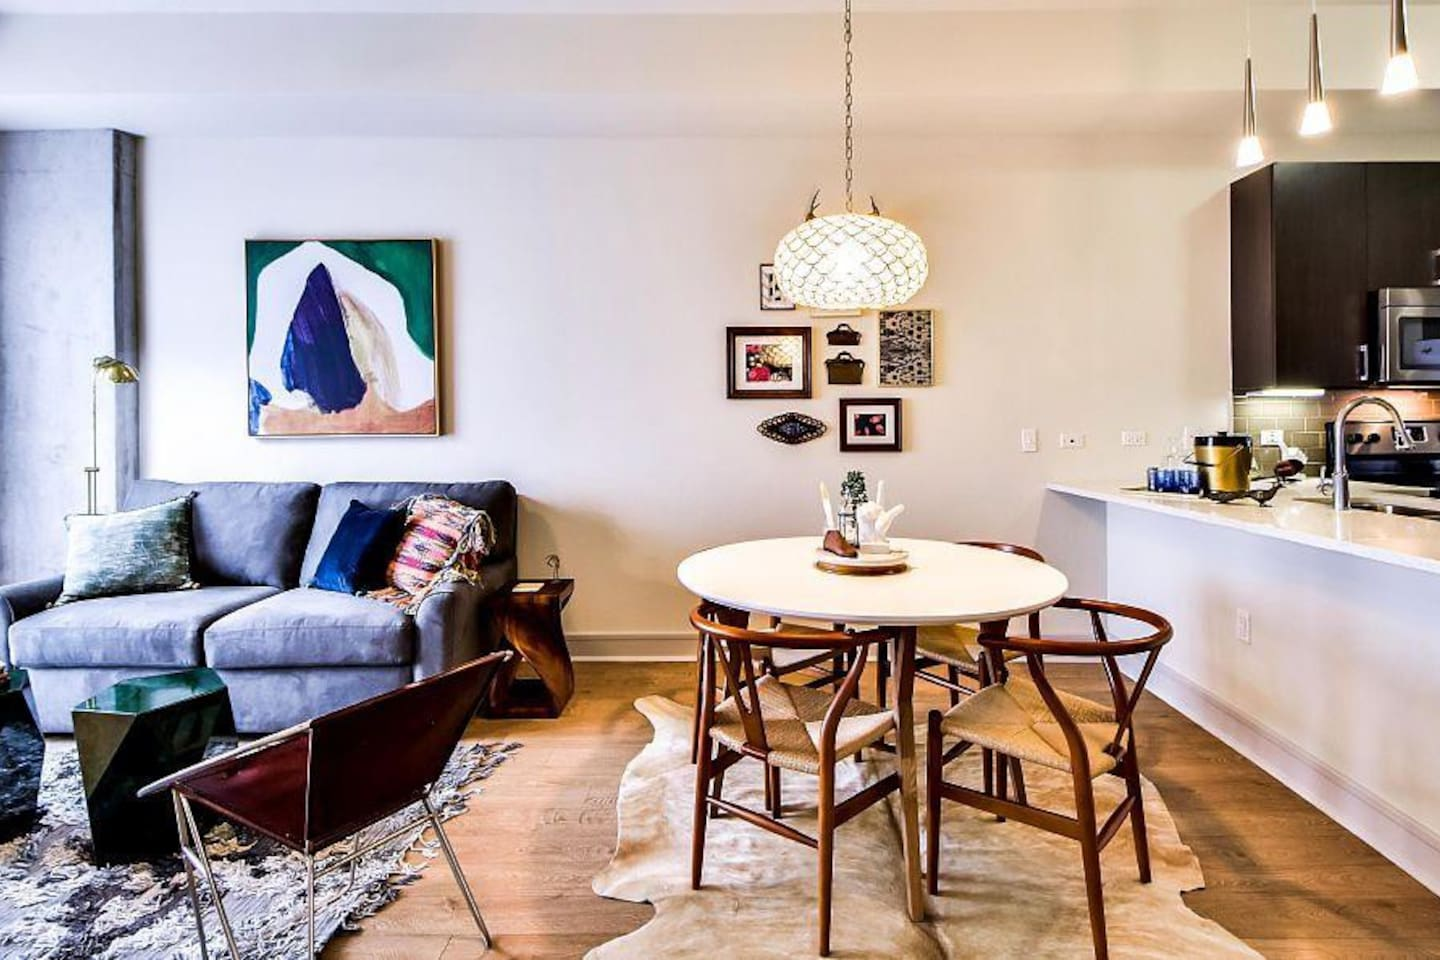 This eclectic unit was professionally designed by an Interior Designer.